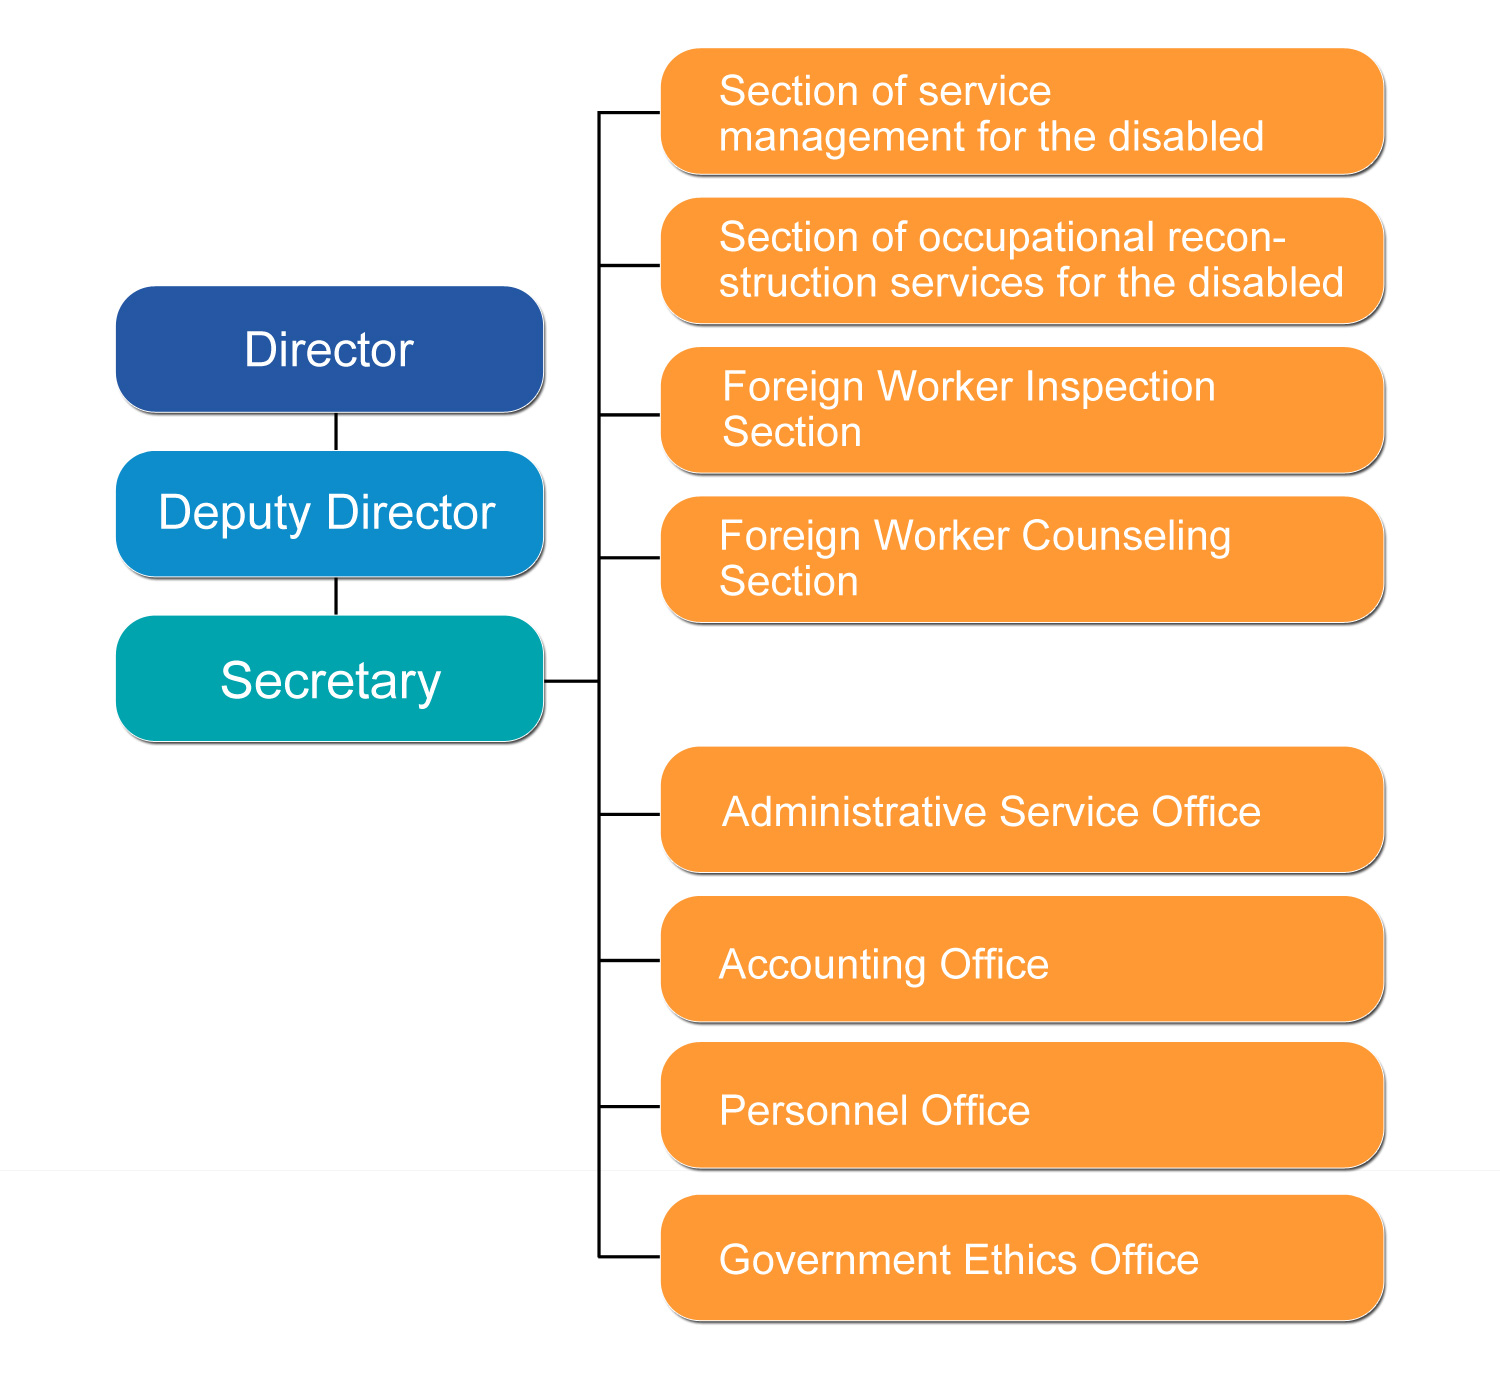 Organizational Chart of Taipei City Foreign and Disabled Labor Office